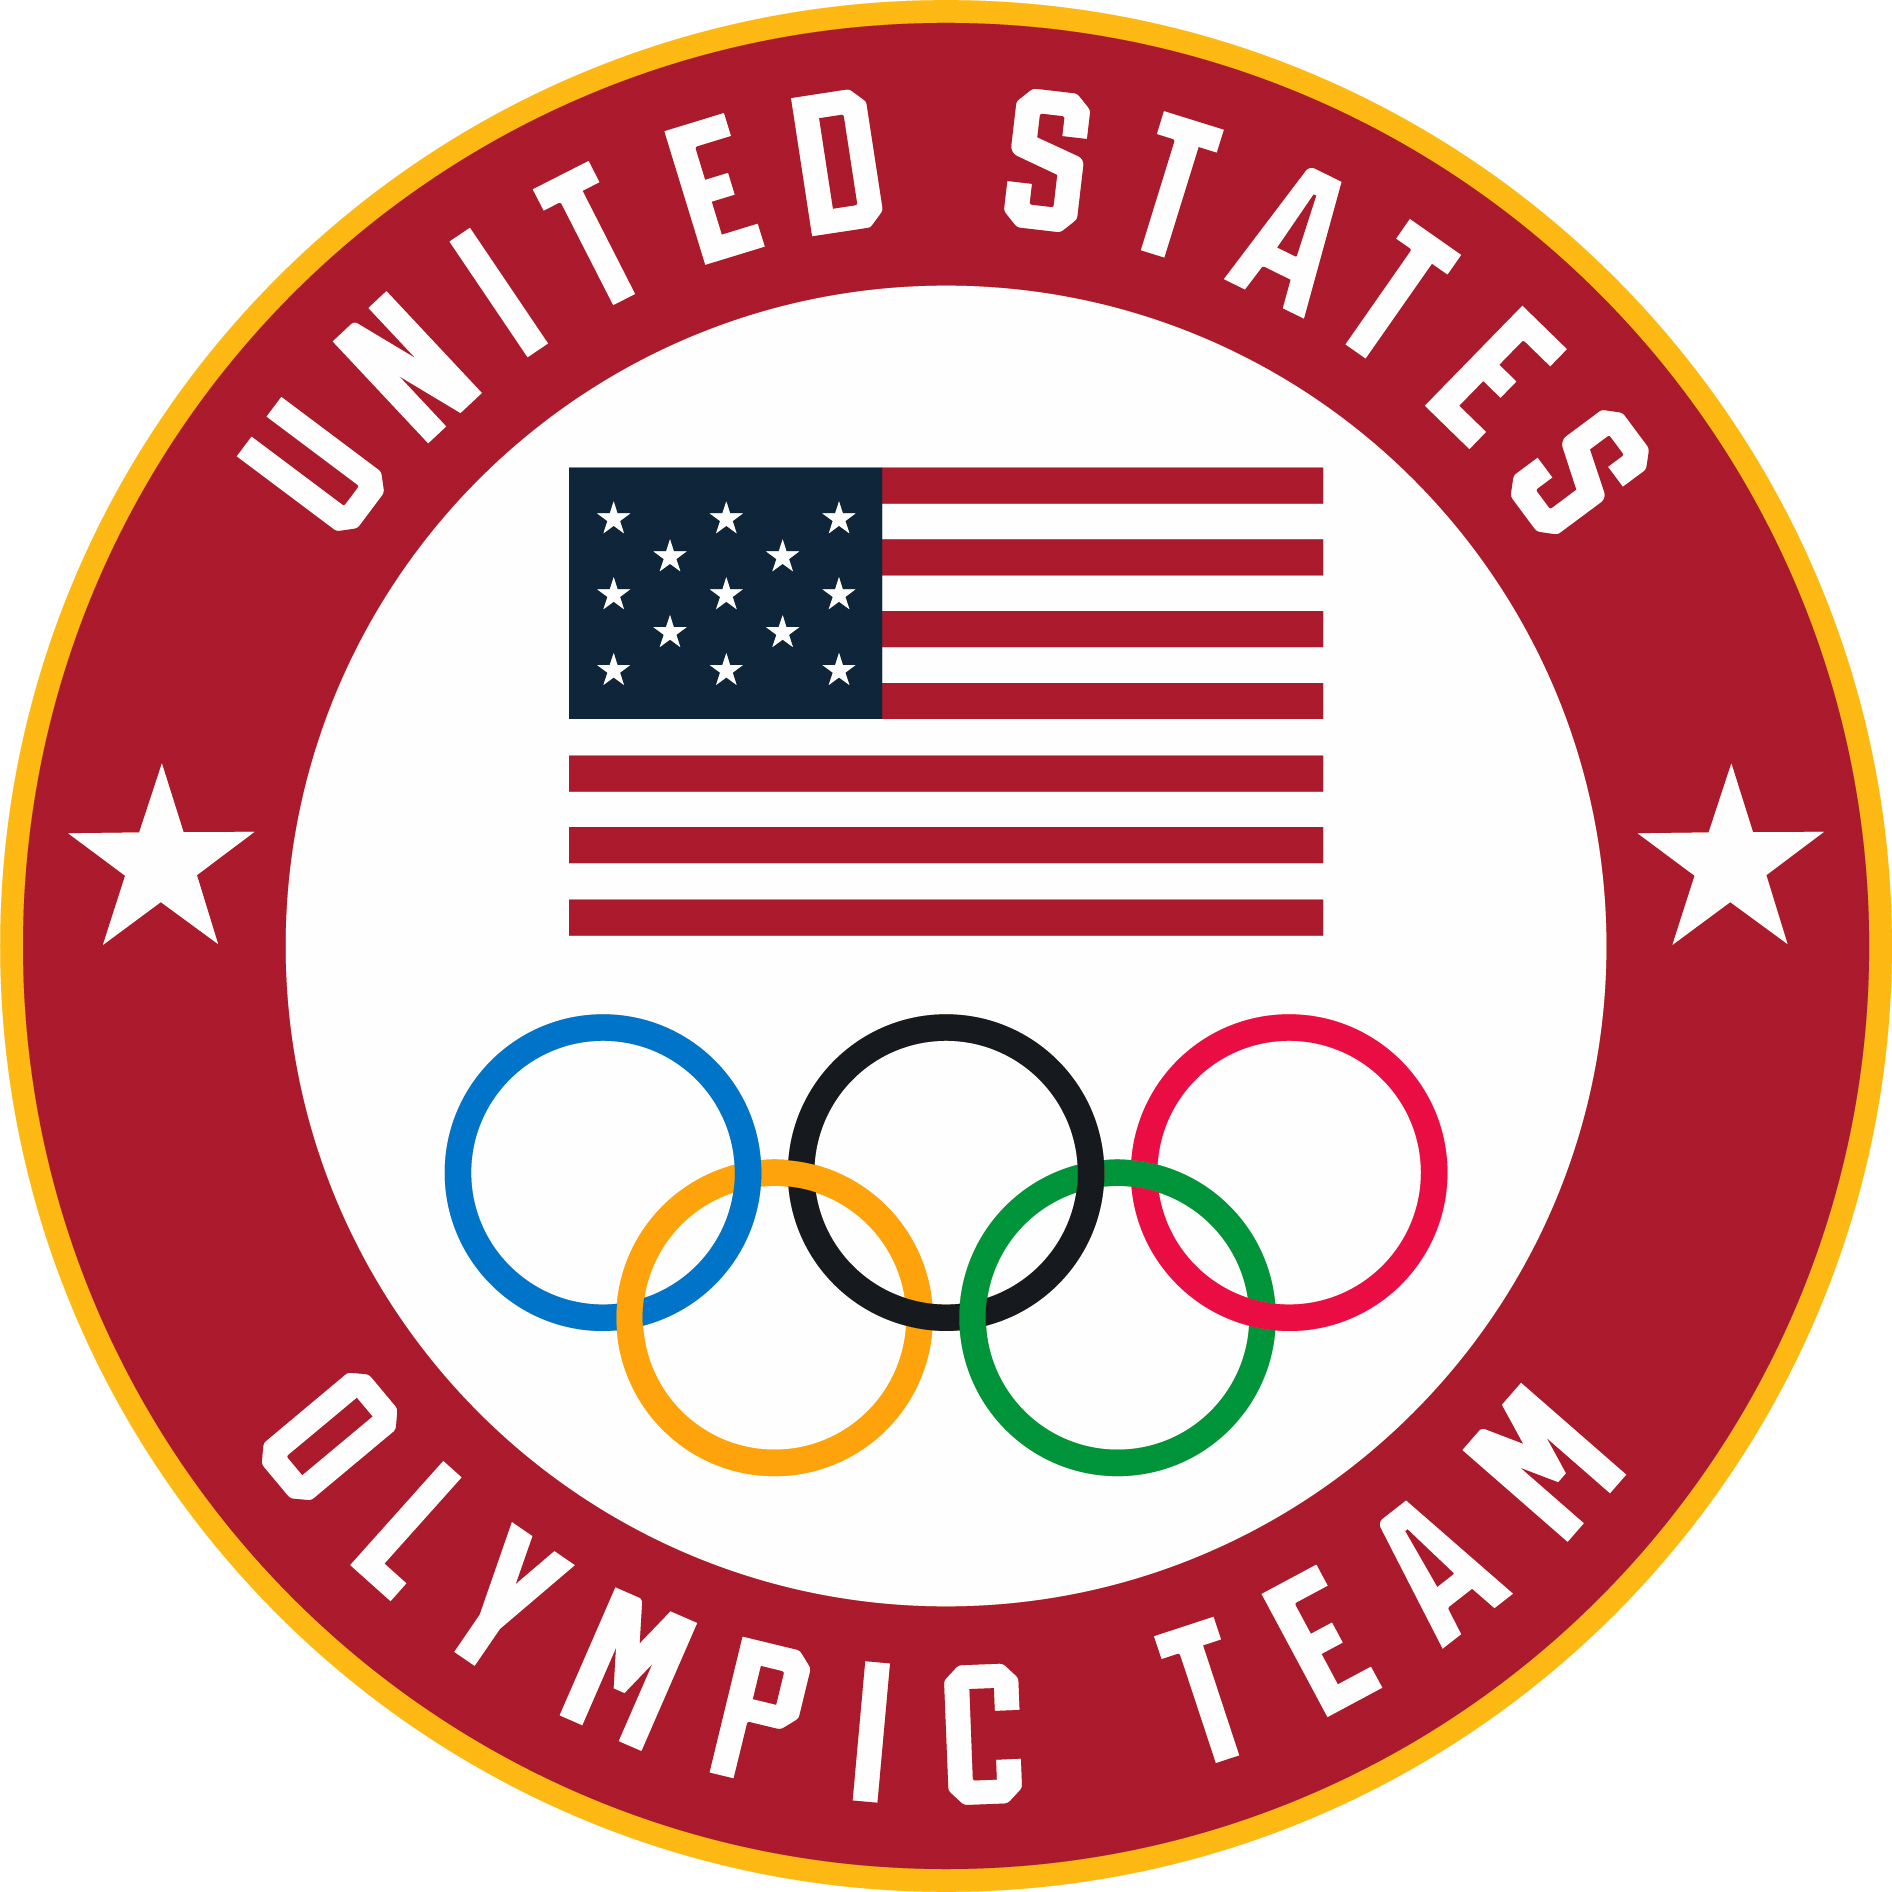 FIELD HOCKEY PIN TOKYO JAPAN 2020 SUMMER OLYMPICS TEAM USA